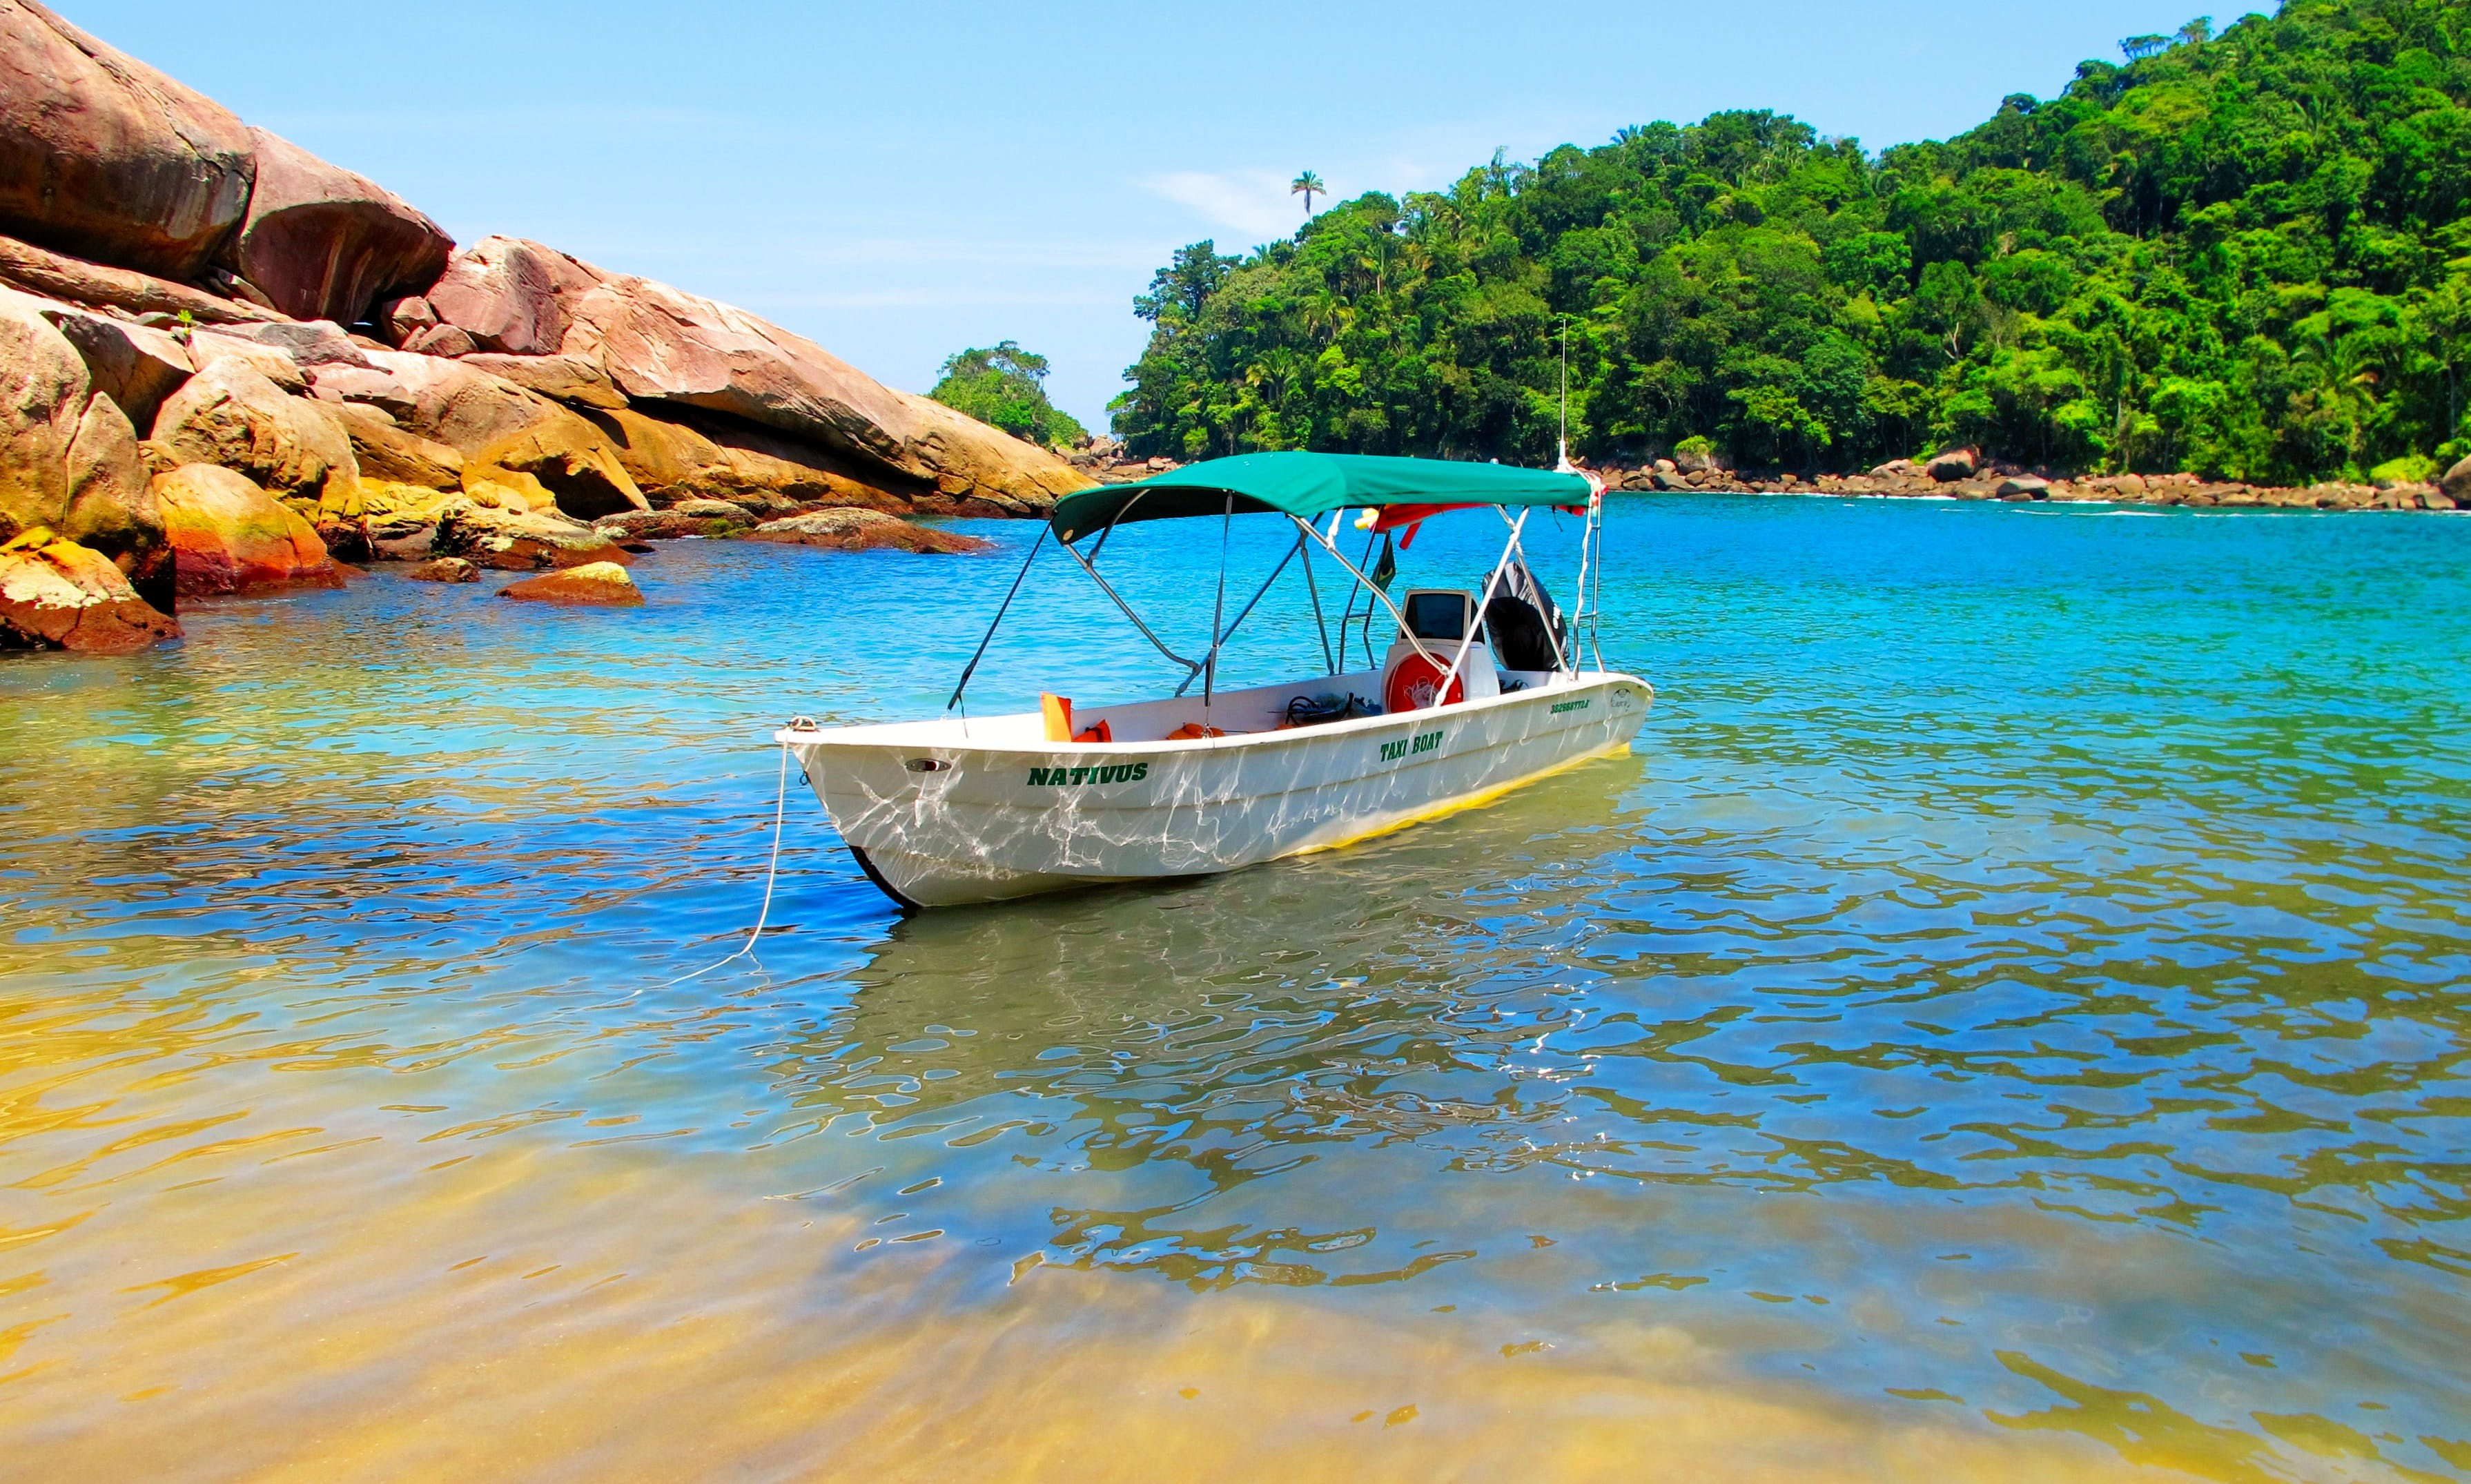 Speed Boat available for rent in Rio de Janeiro, Brazil